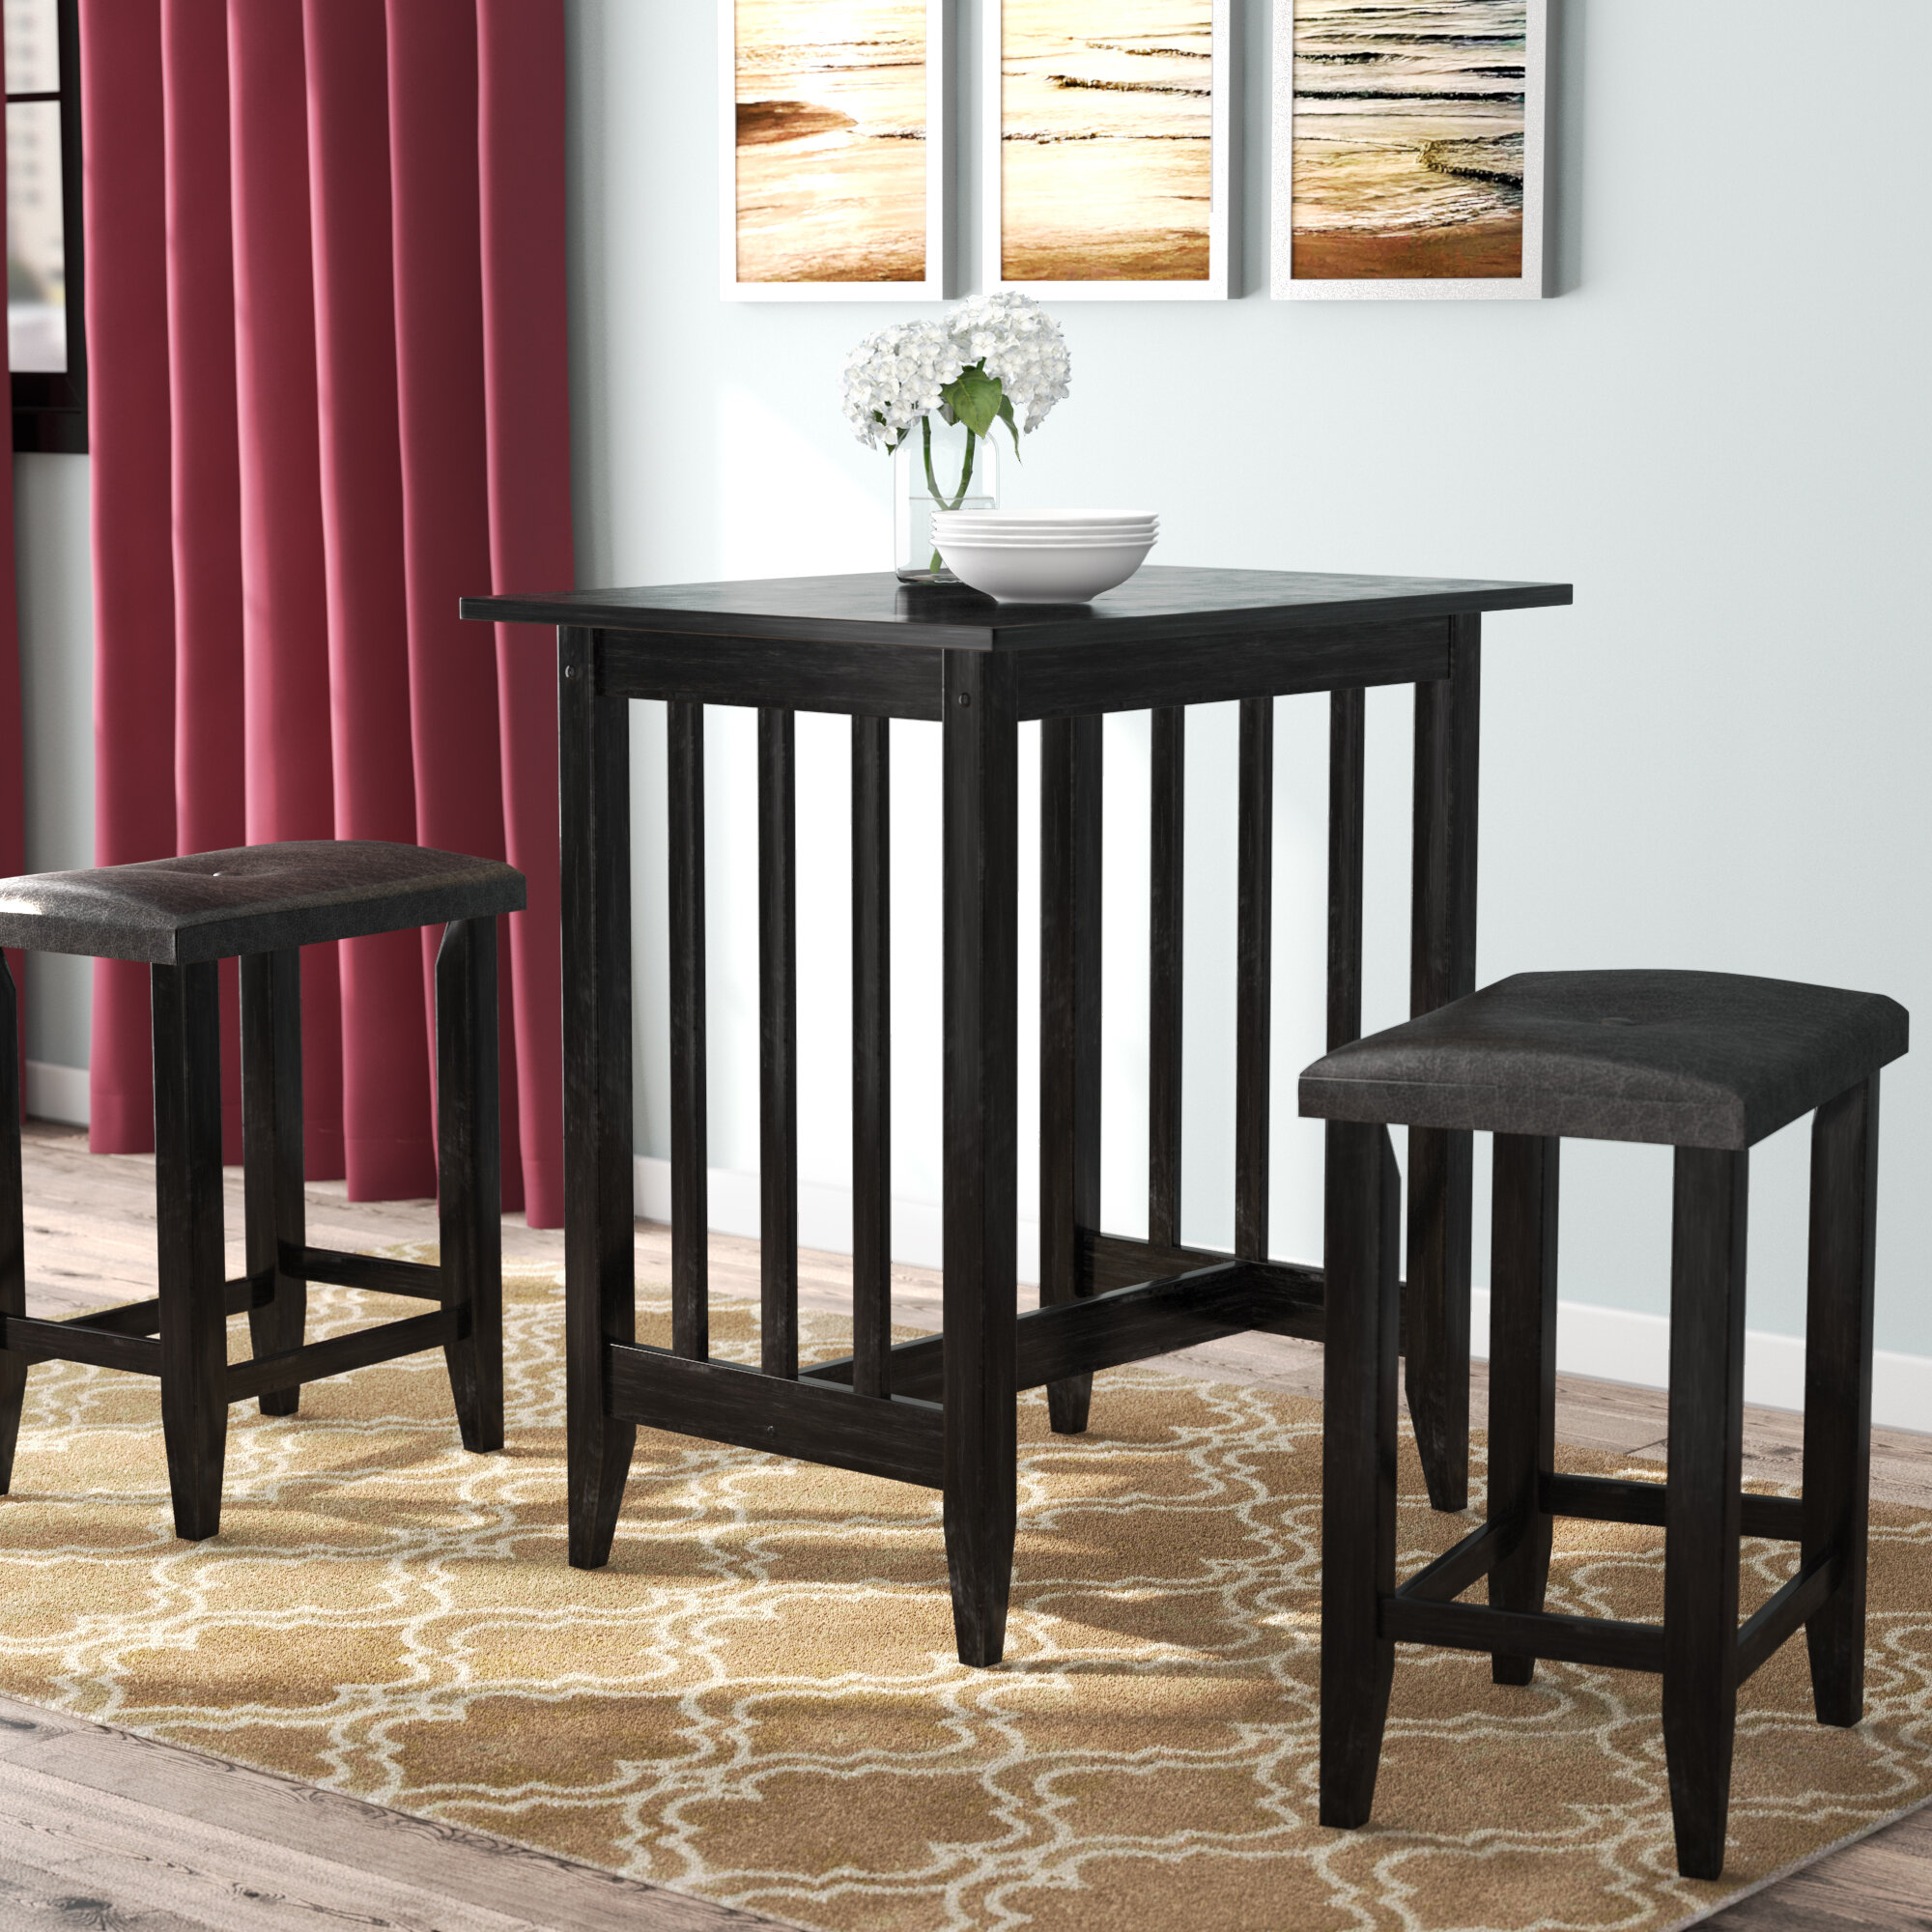 Andover Mills Richland 3 Piece Counter Height Pub Table Set u0026 Reviews | Wayfair & Andover Mills Richland 3 Piece Counter Height Pub Table Set ...